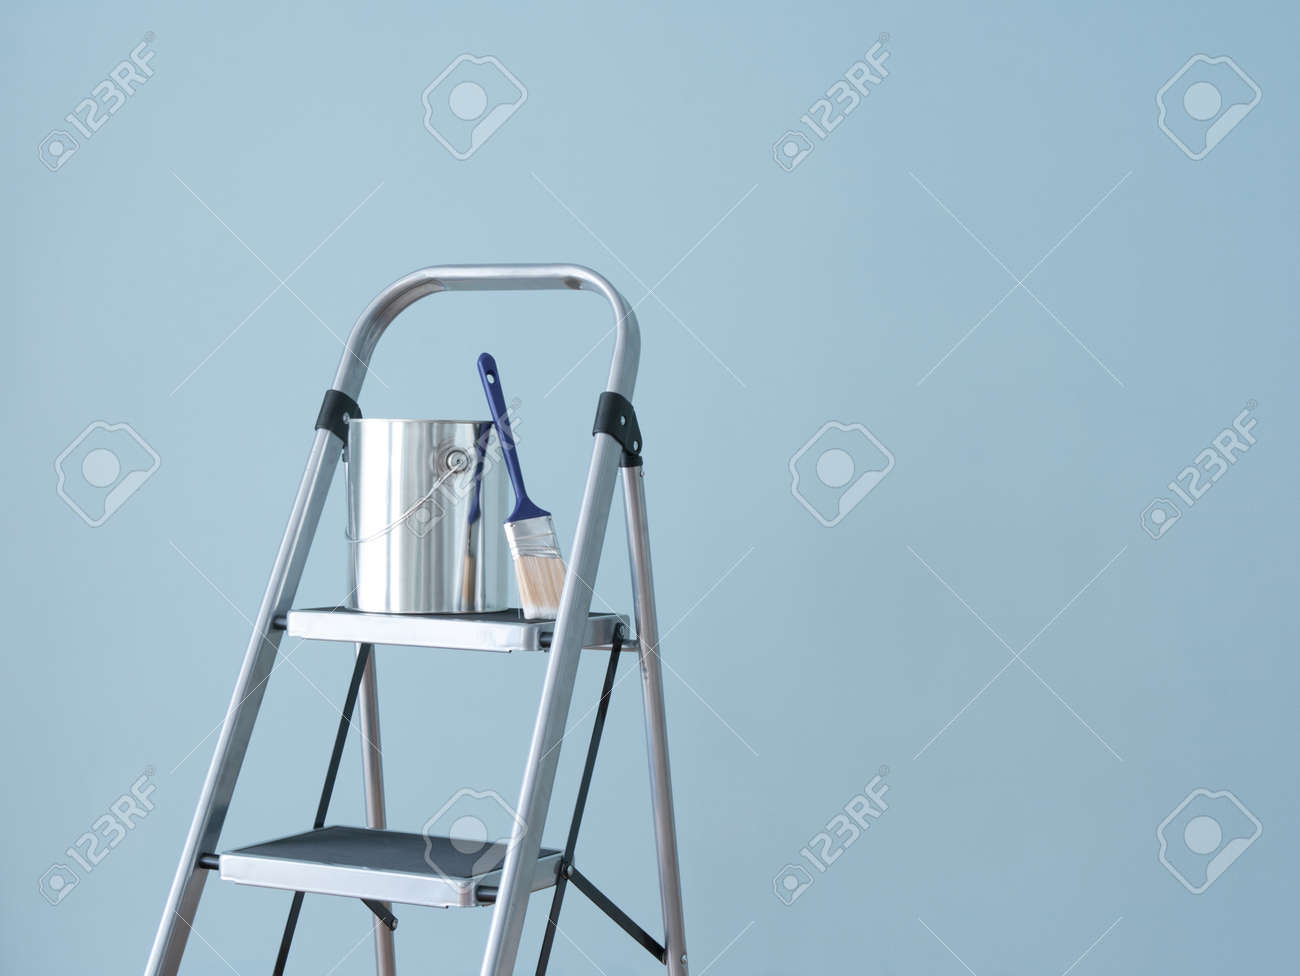 Preparing To Paint The Wall Painting Tools On A Metal Ladder